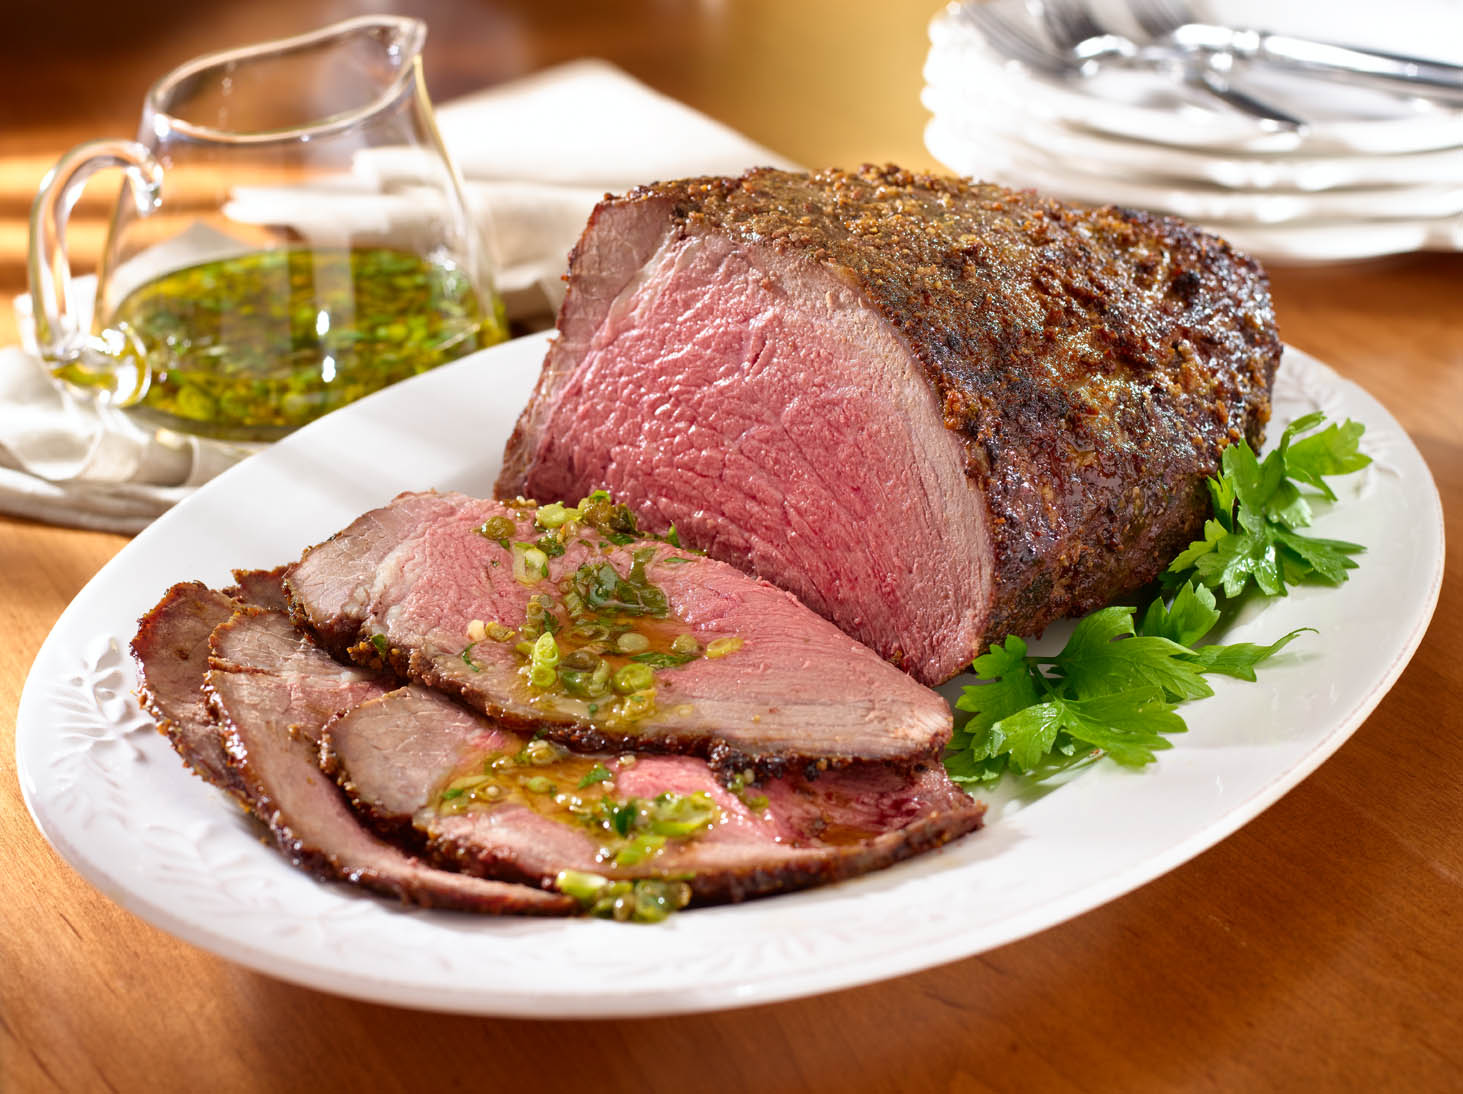 Herbed Beef Roast with Caper Sauce